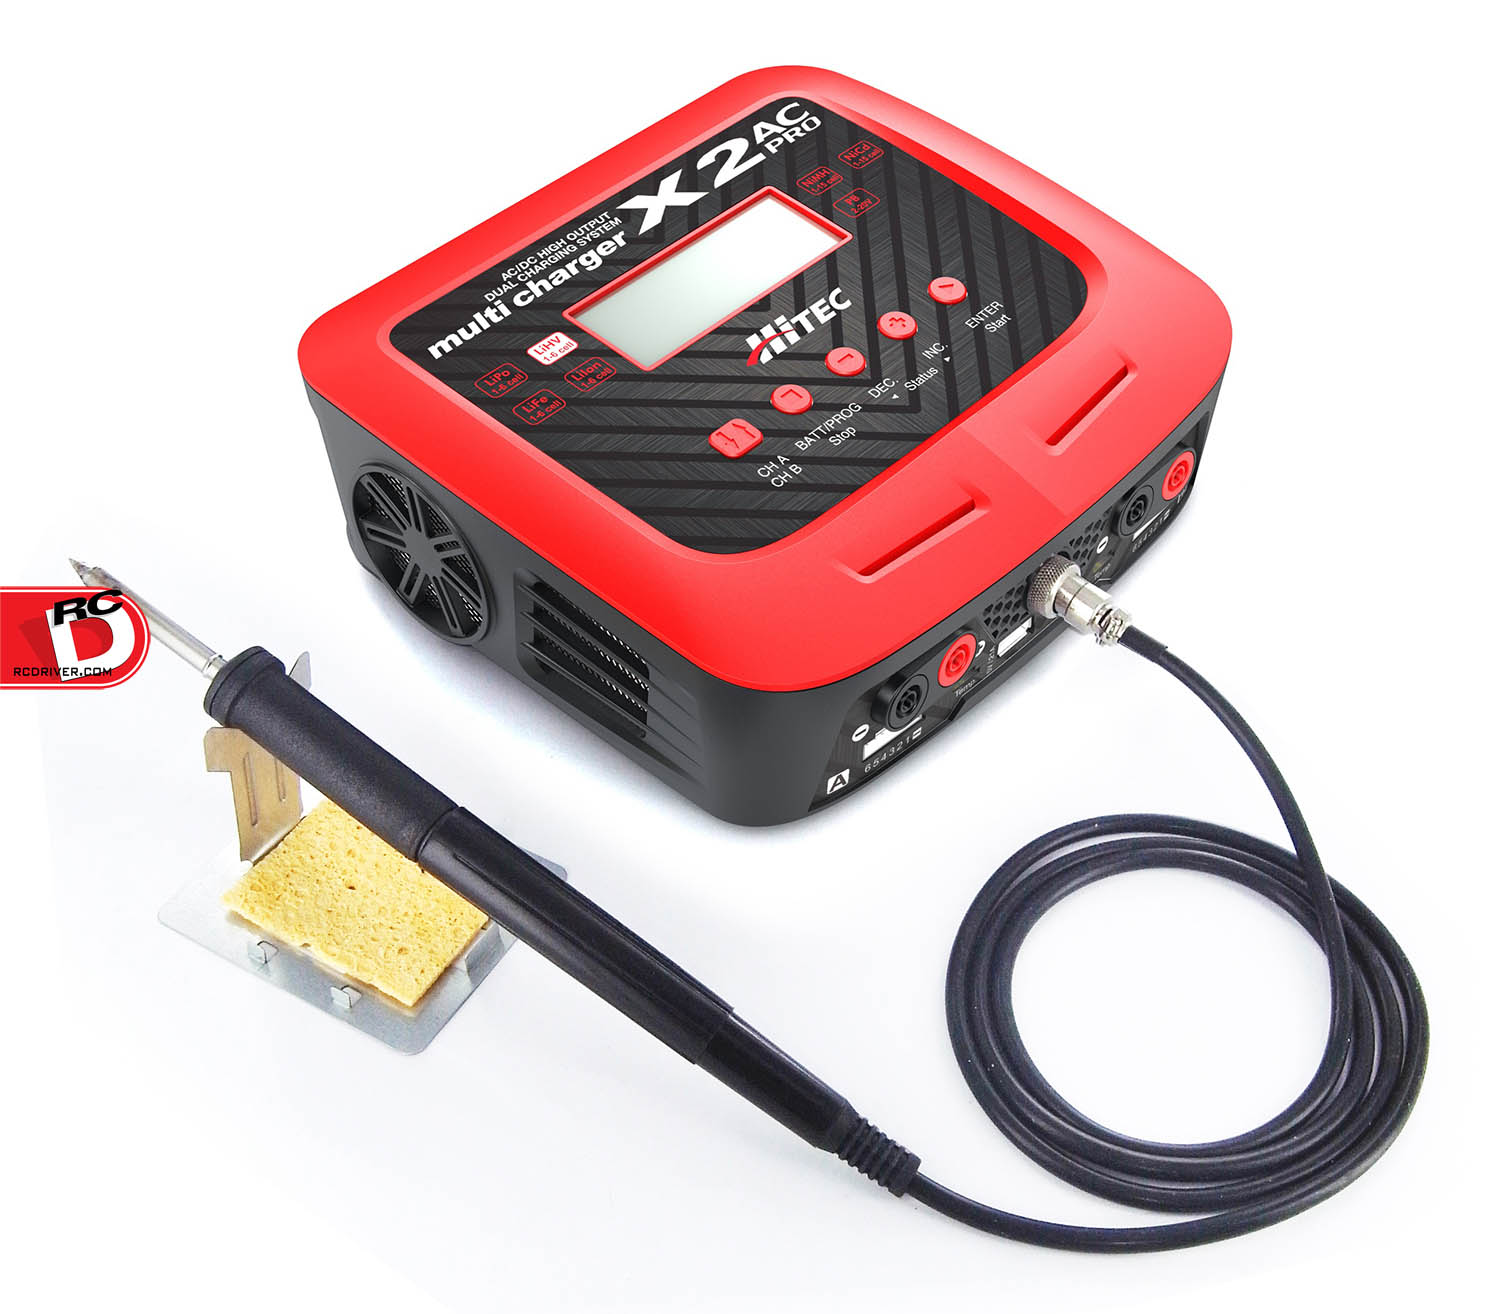 X2 AC Pro – AC/DC Multi Charger and Soldering Iron from Hitec